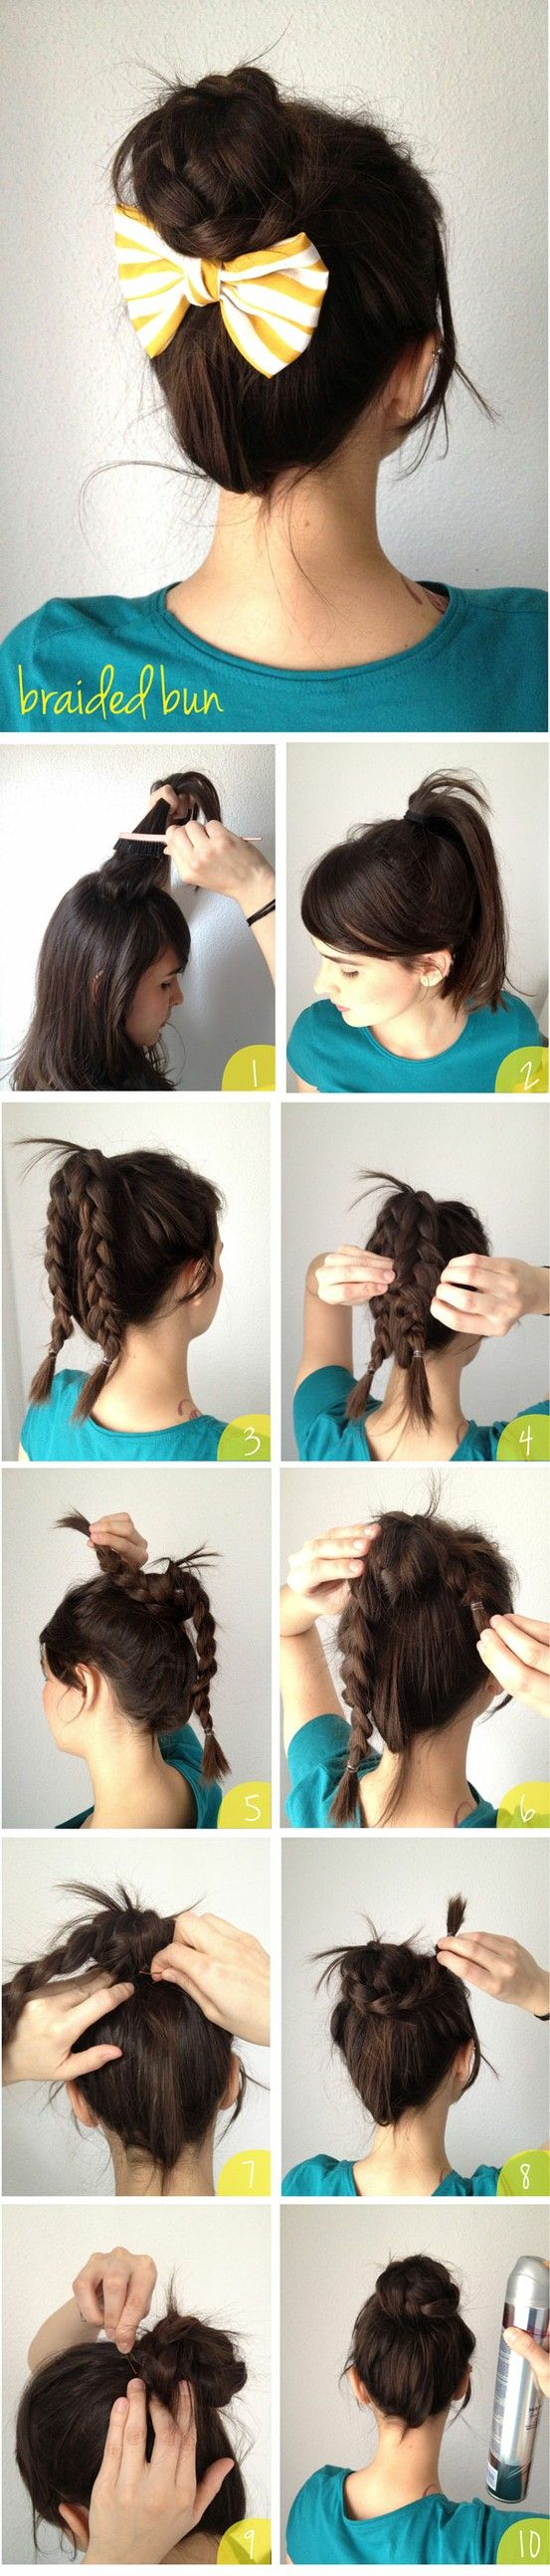 hair-do #updo #do: